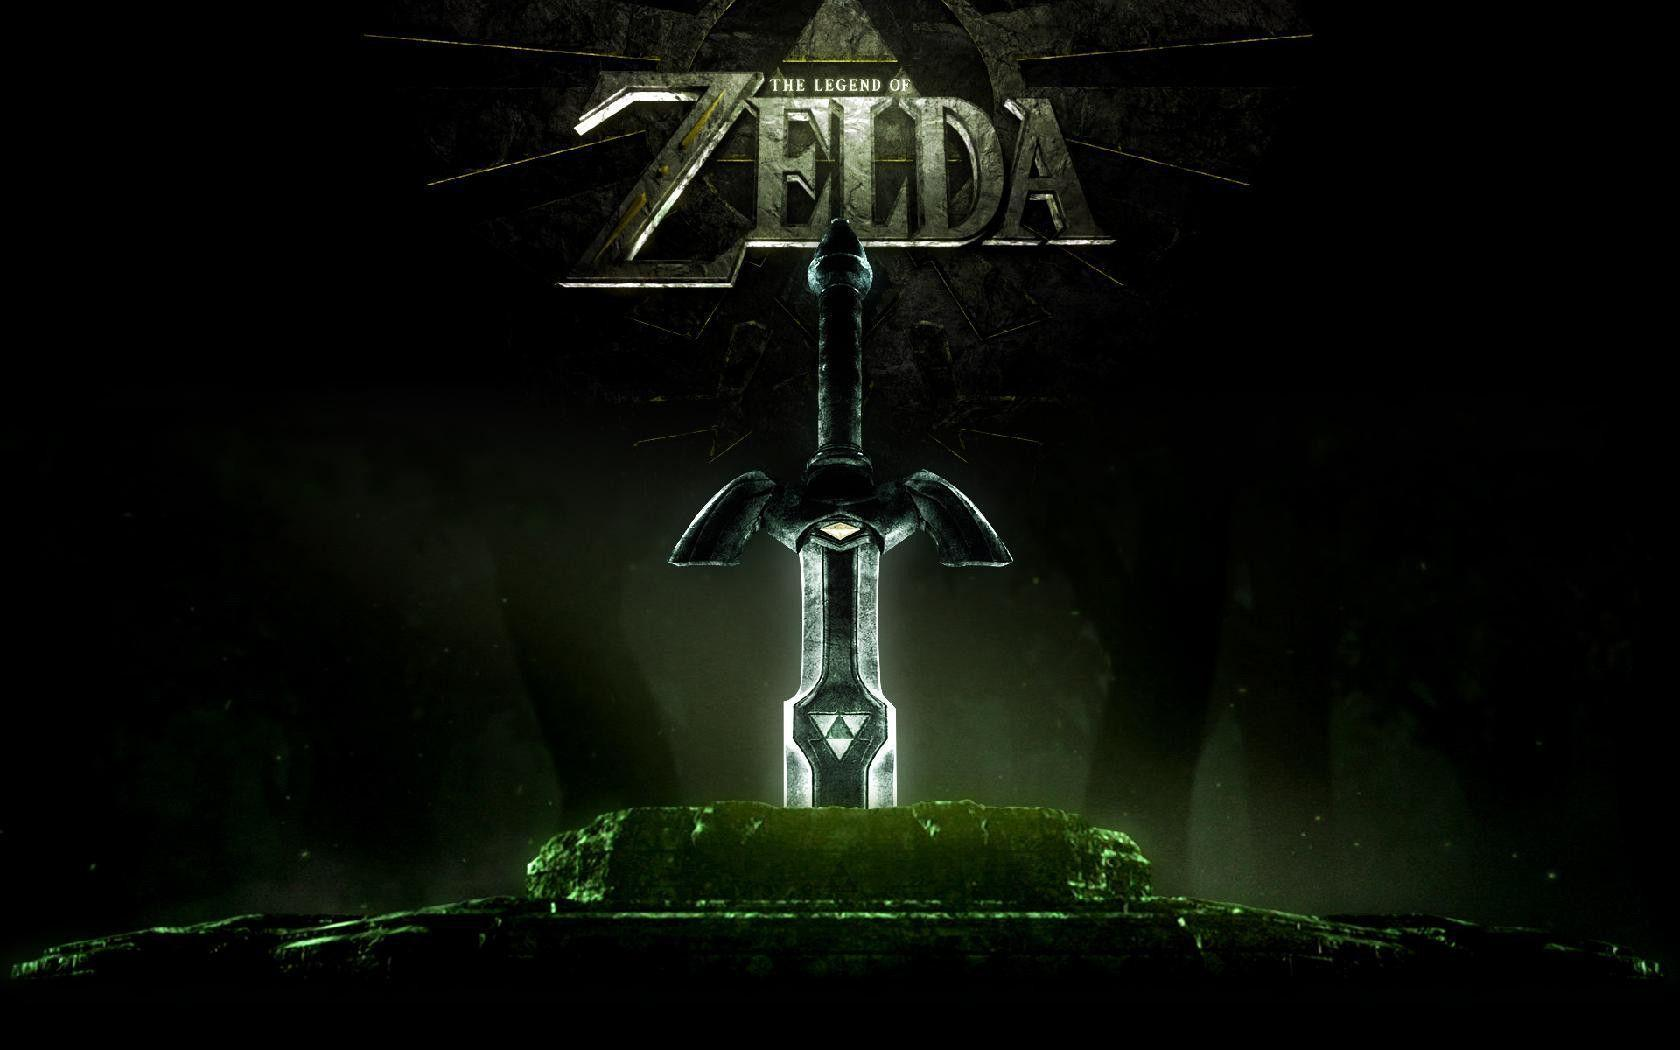 Wallpapers da semana: The Legend of Zelda